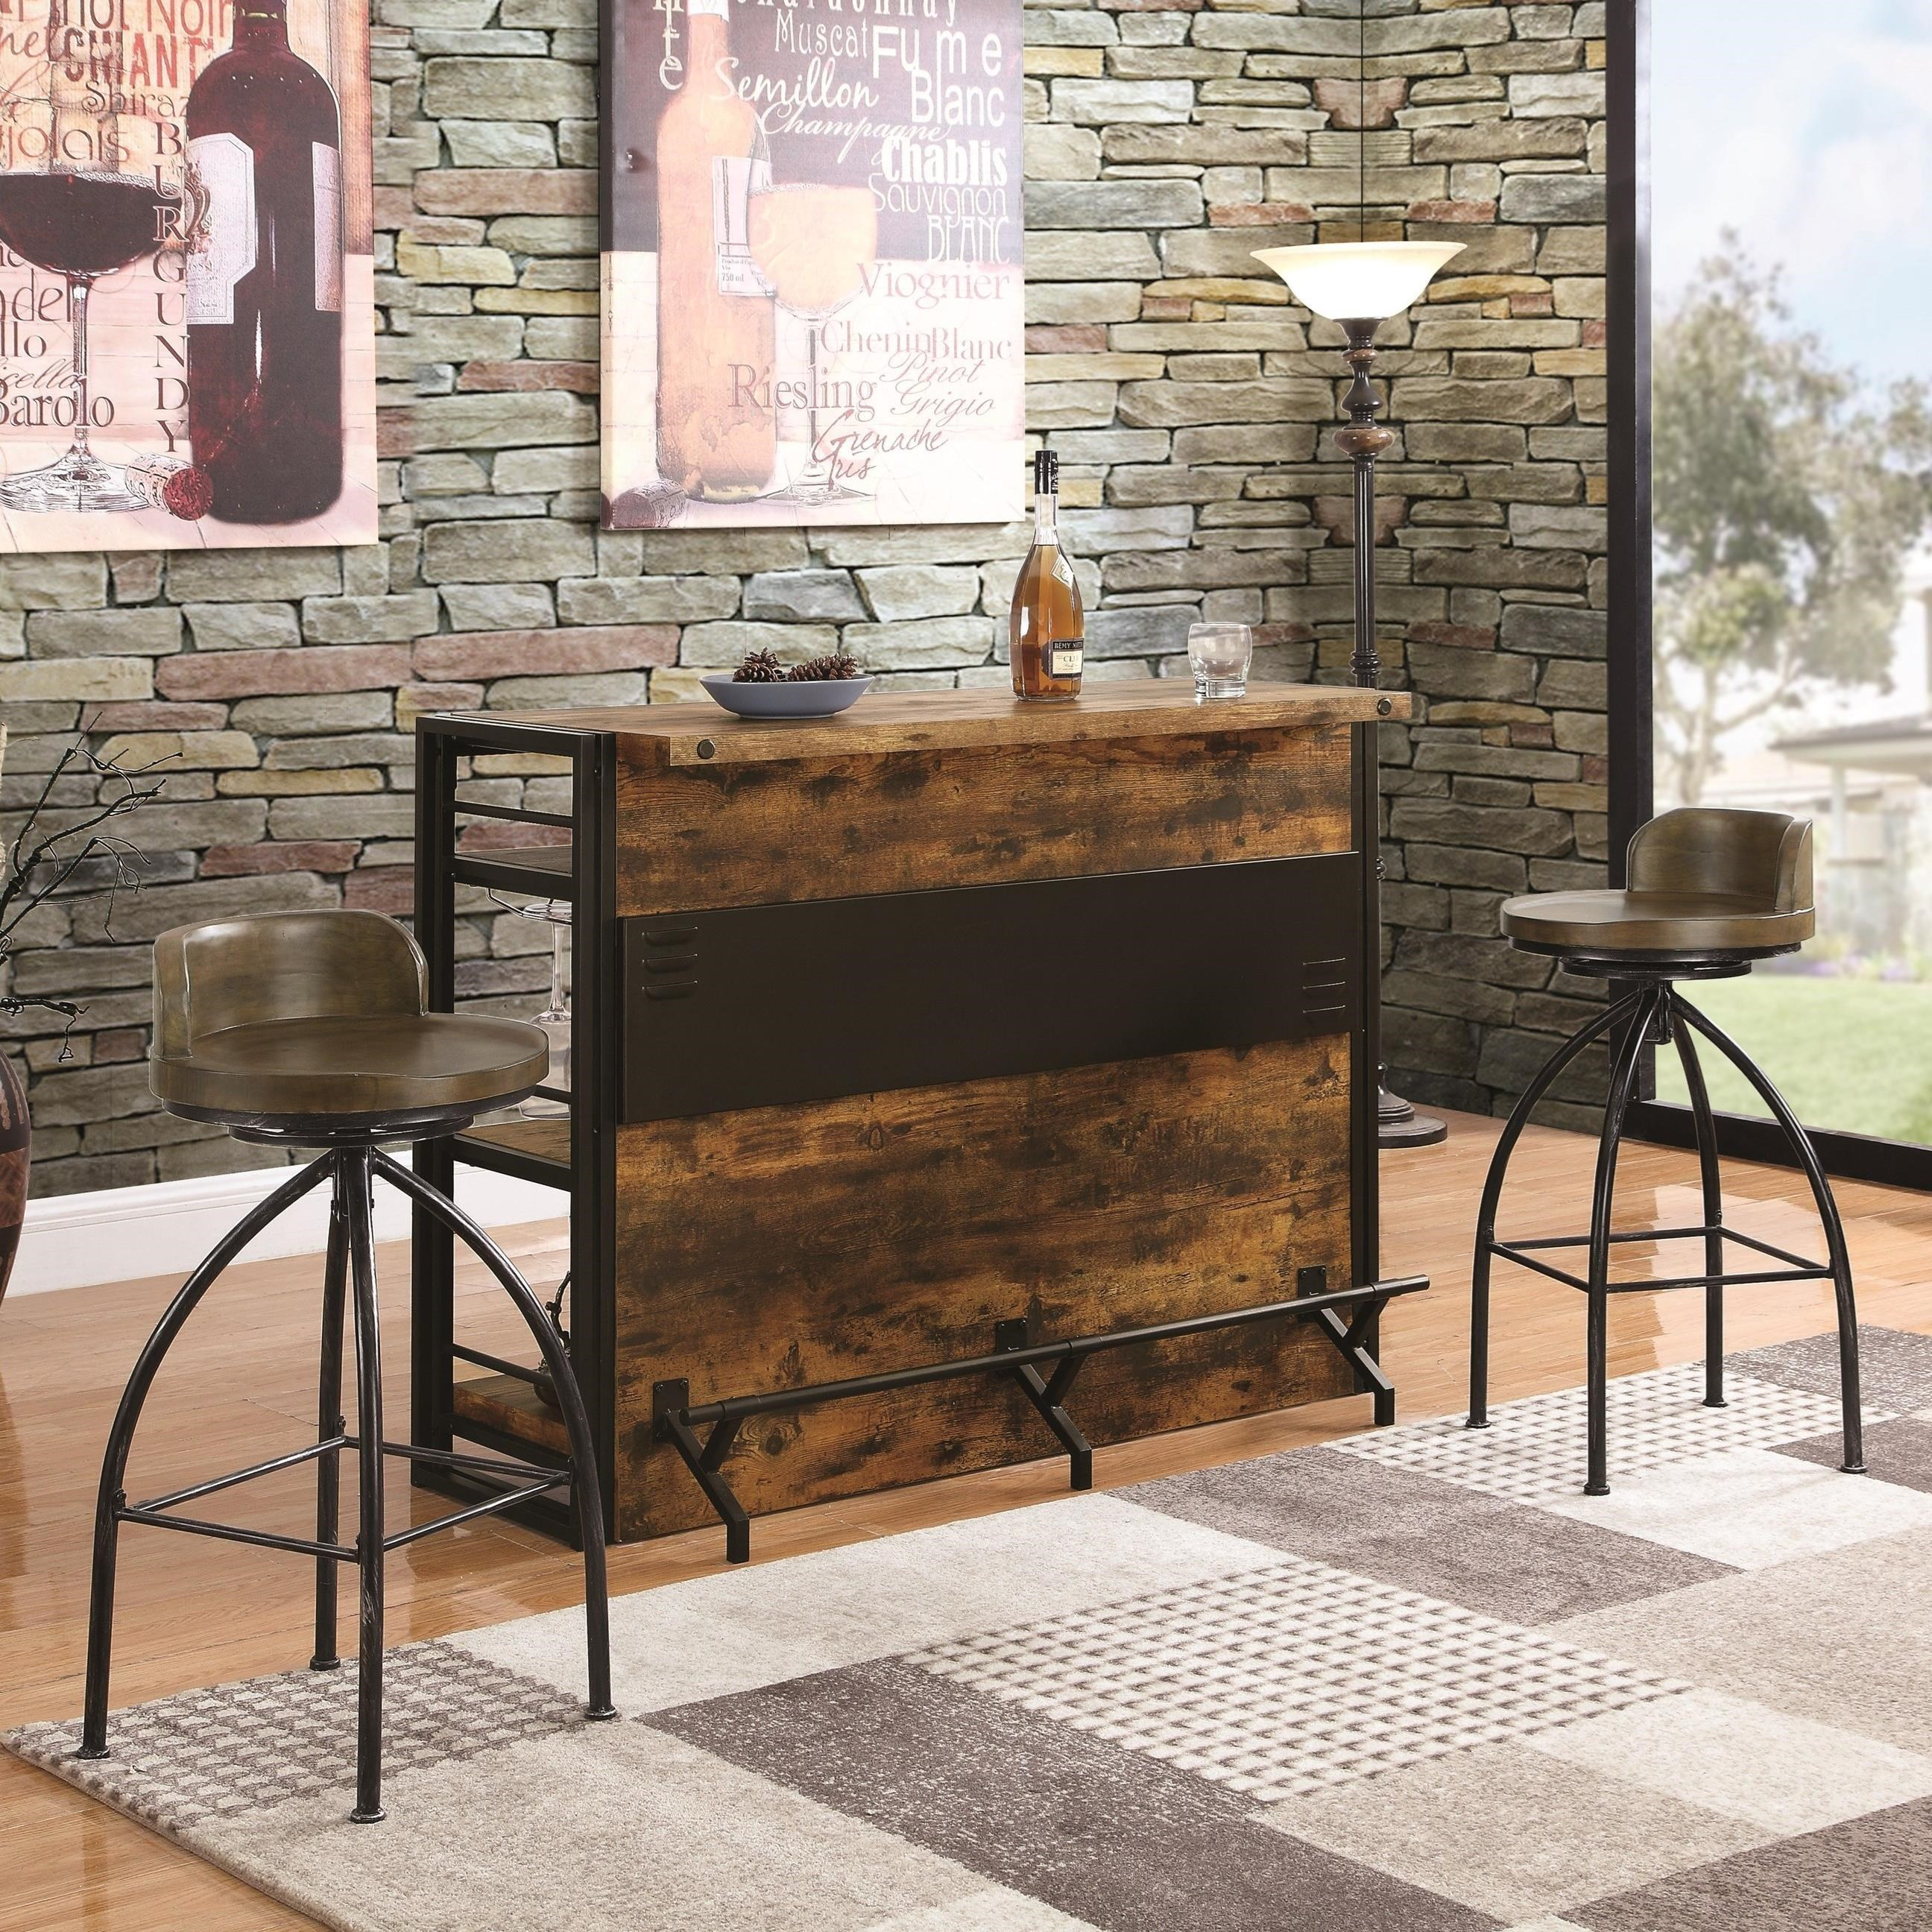 Rustic Bar with Two Stools